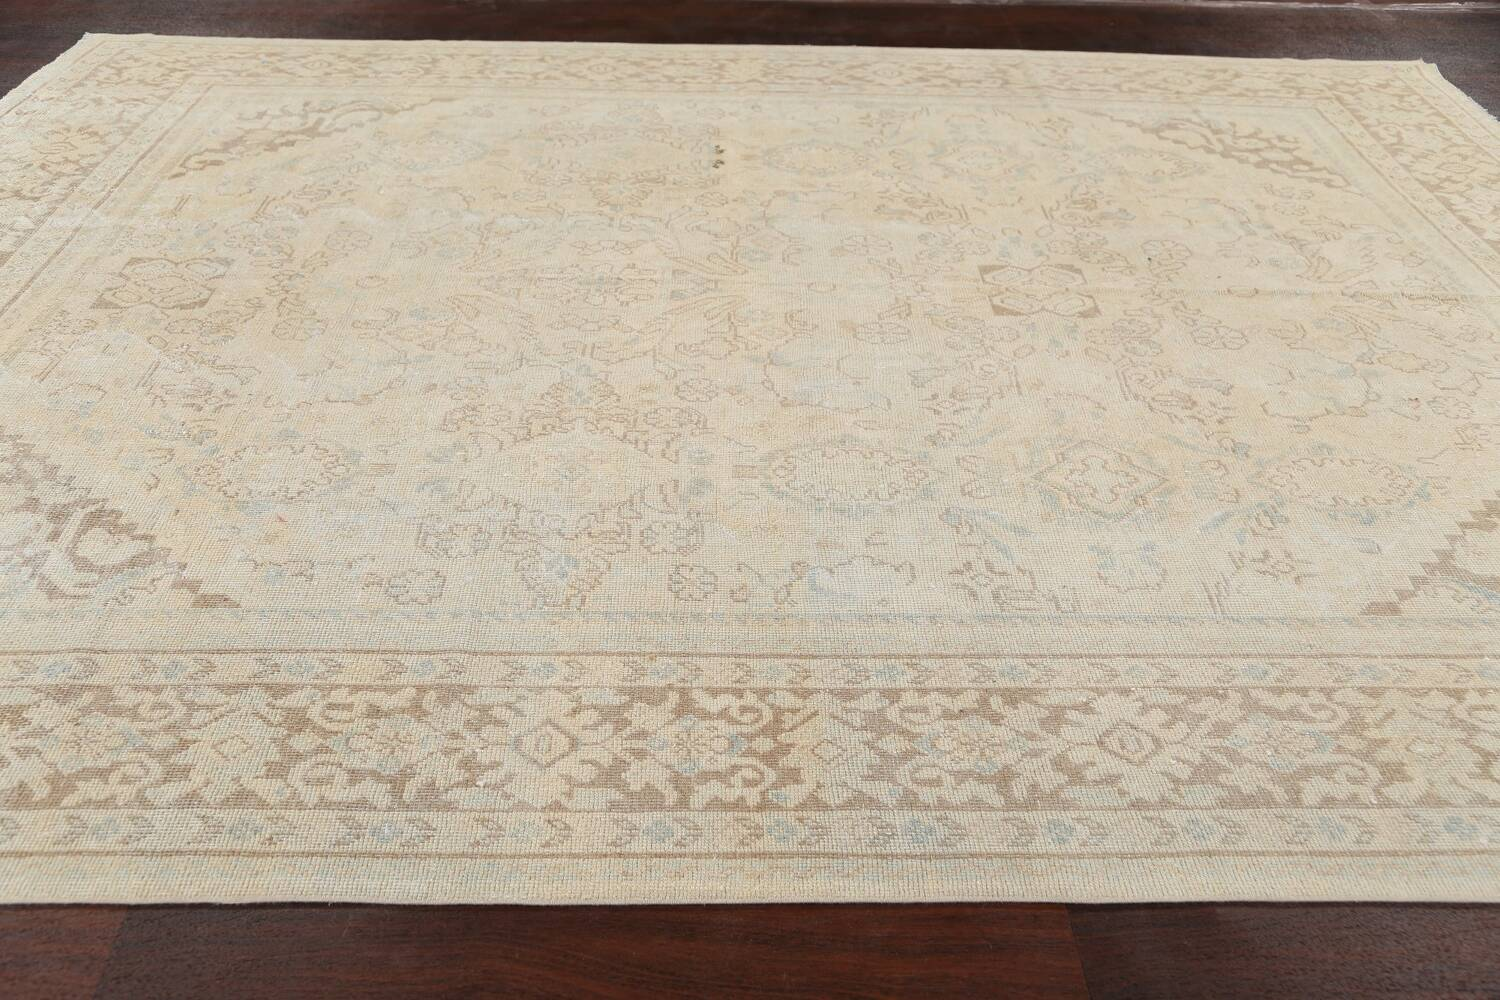 Antique Floral Mahal Persian Area Rug 9x12 image 14